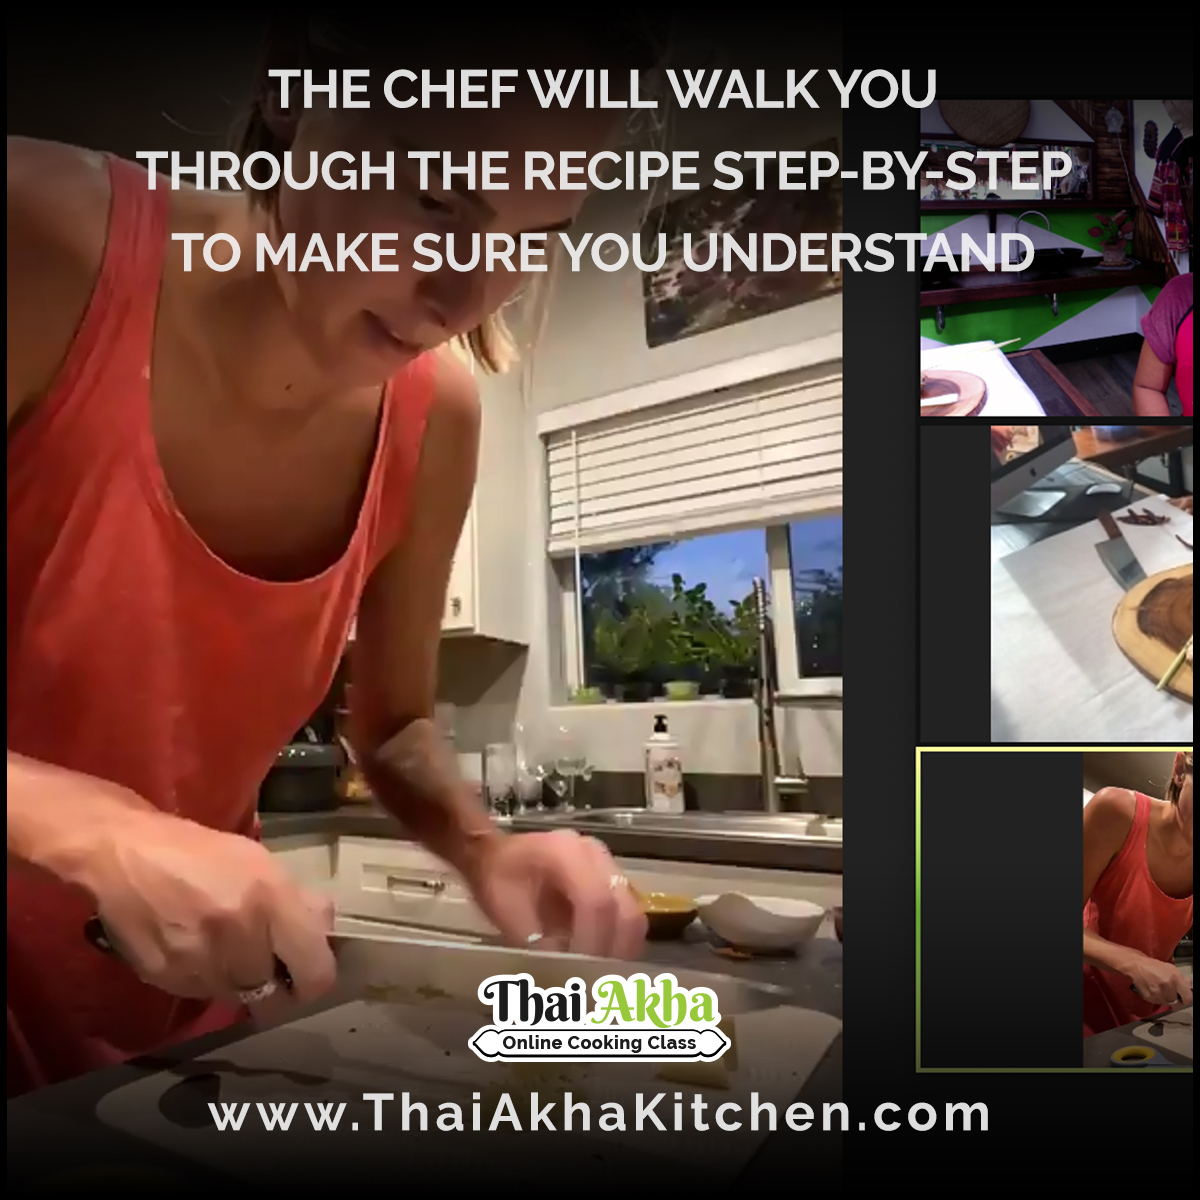 Khao Soi - Online Cooking Course by Thai Akha Kitchen